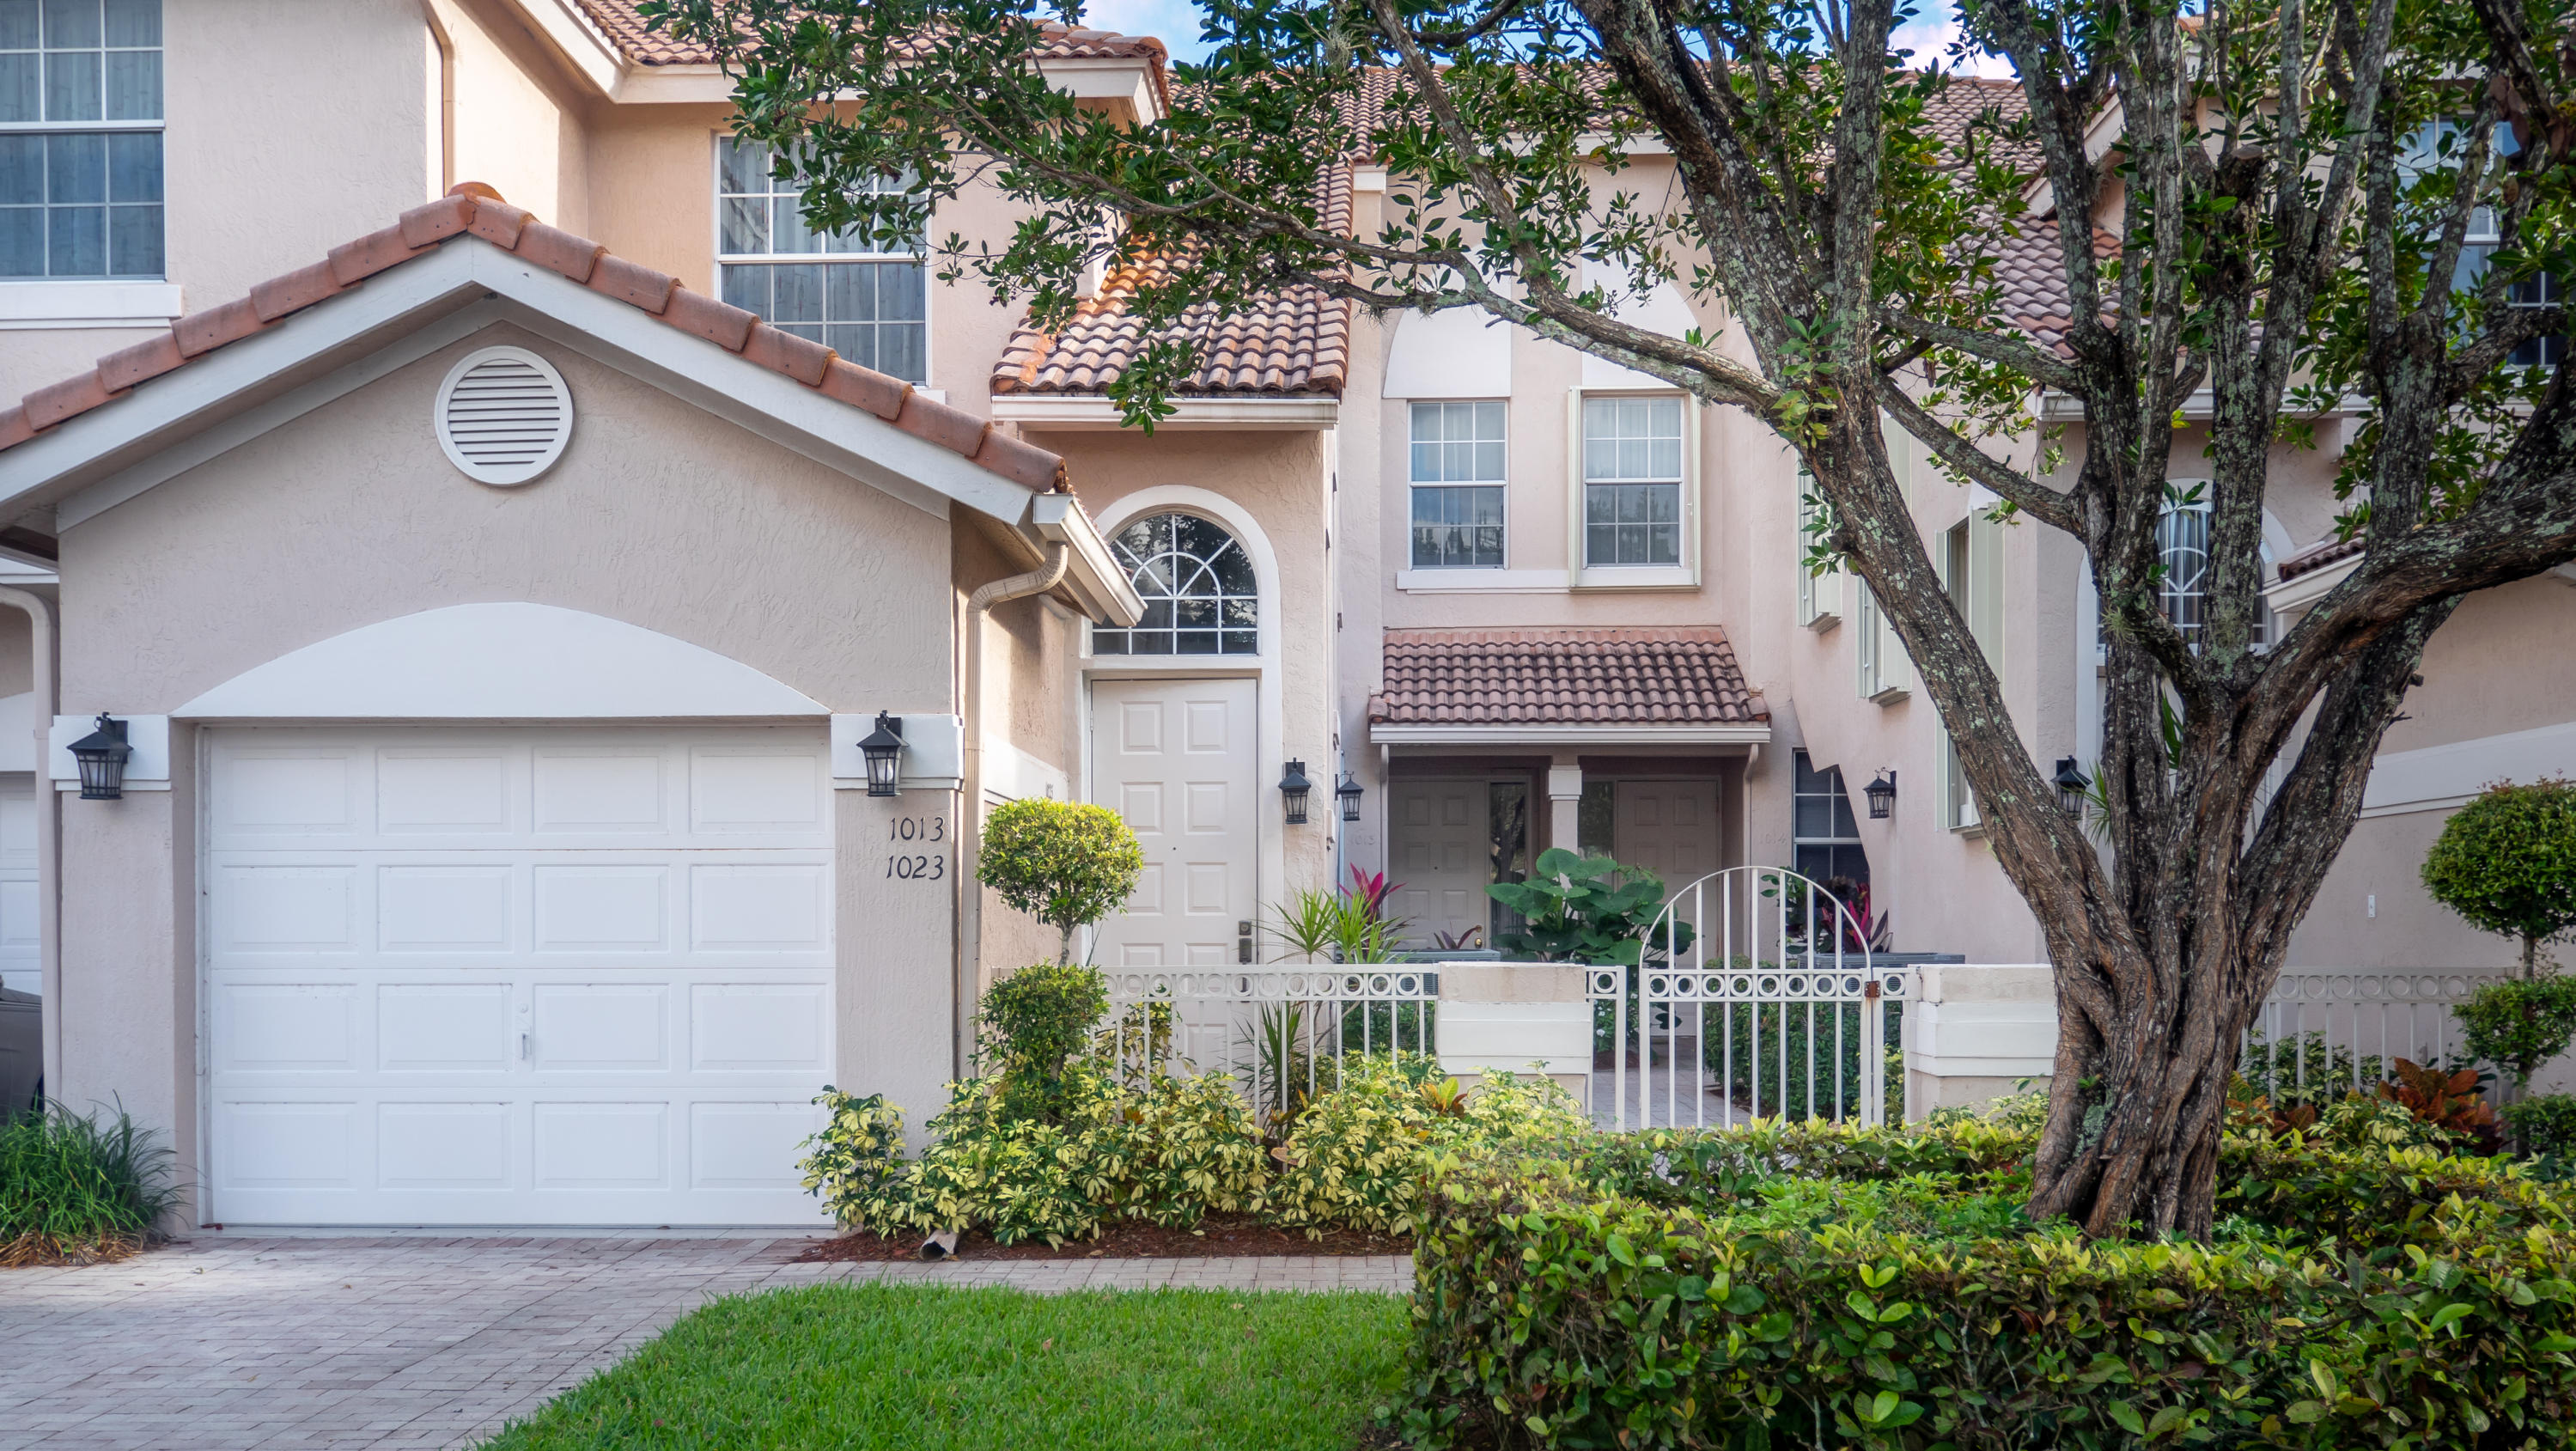 Photo of 6592 Villa Sonrisa Drive #1023, Boca Raton, FL 33433